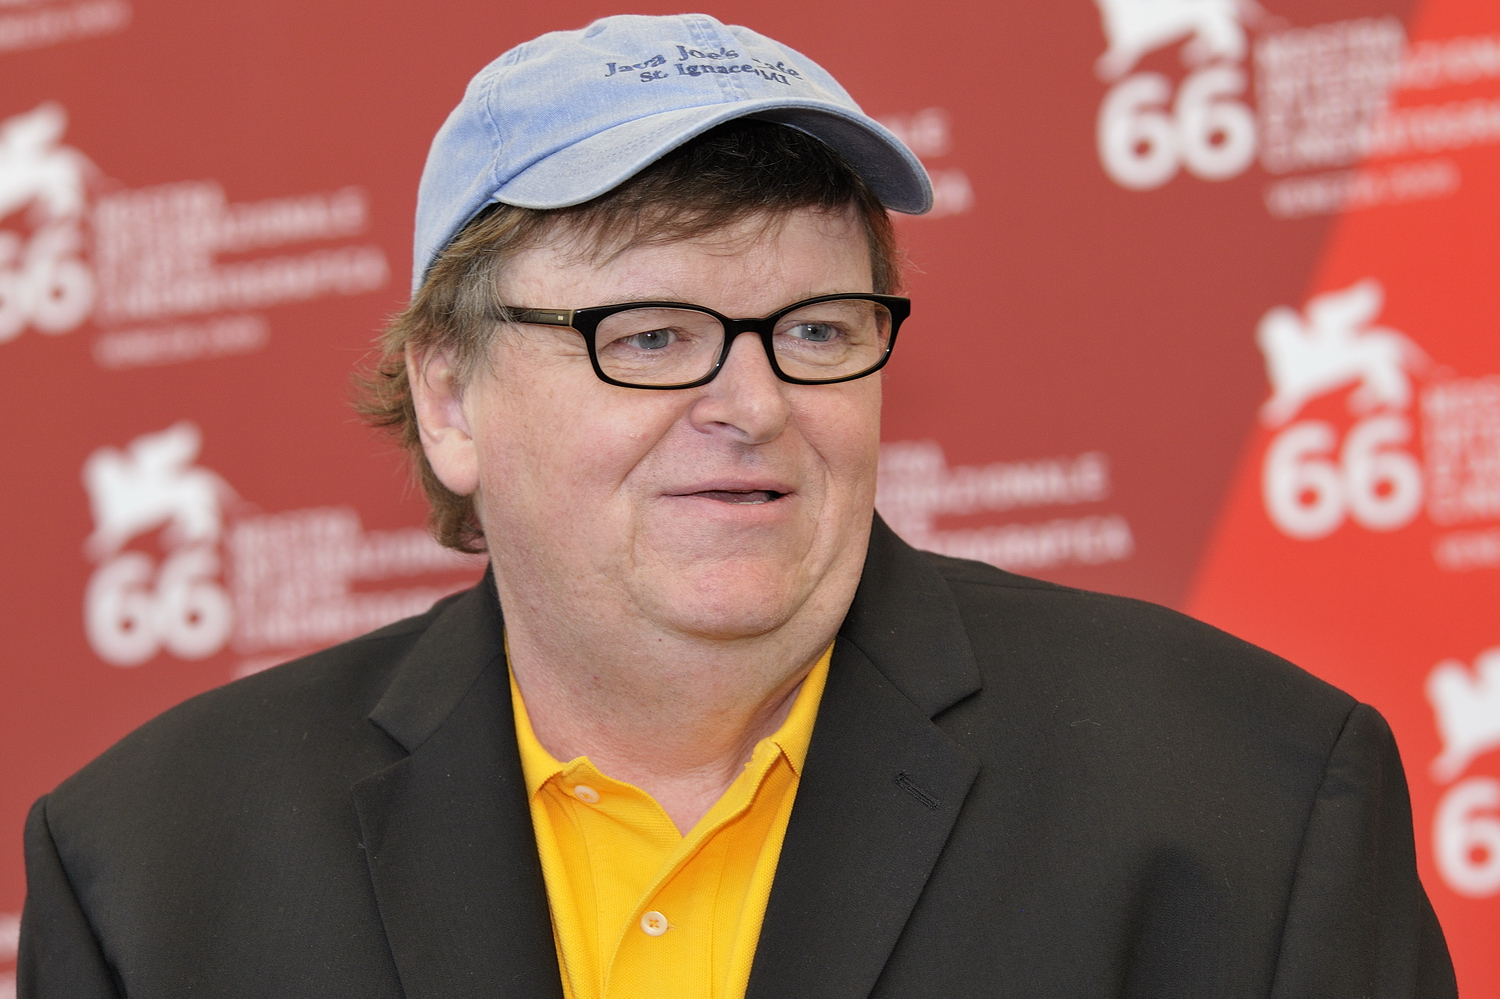 Michael Moore Creating Film in Latest Attempt to Undo President Trump